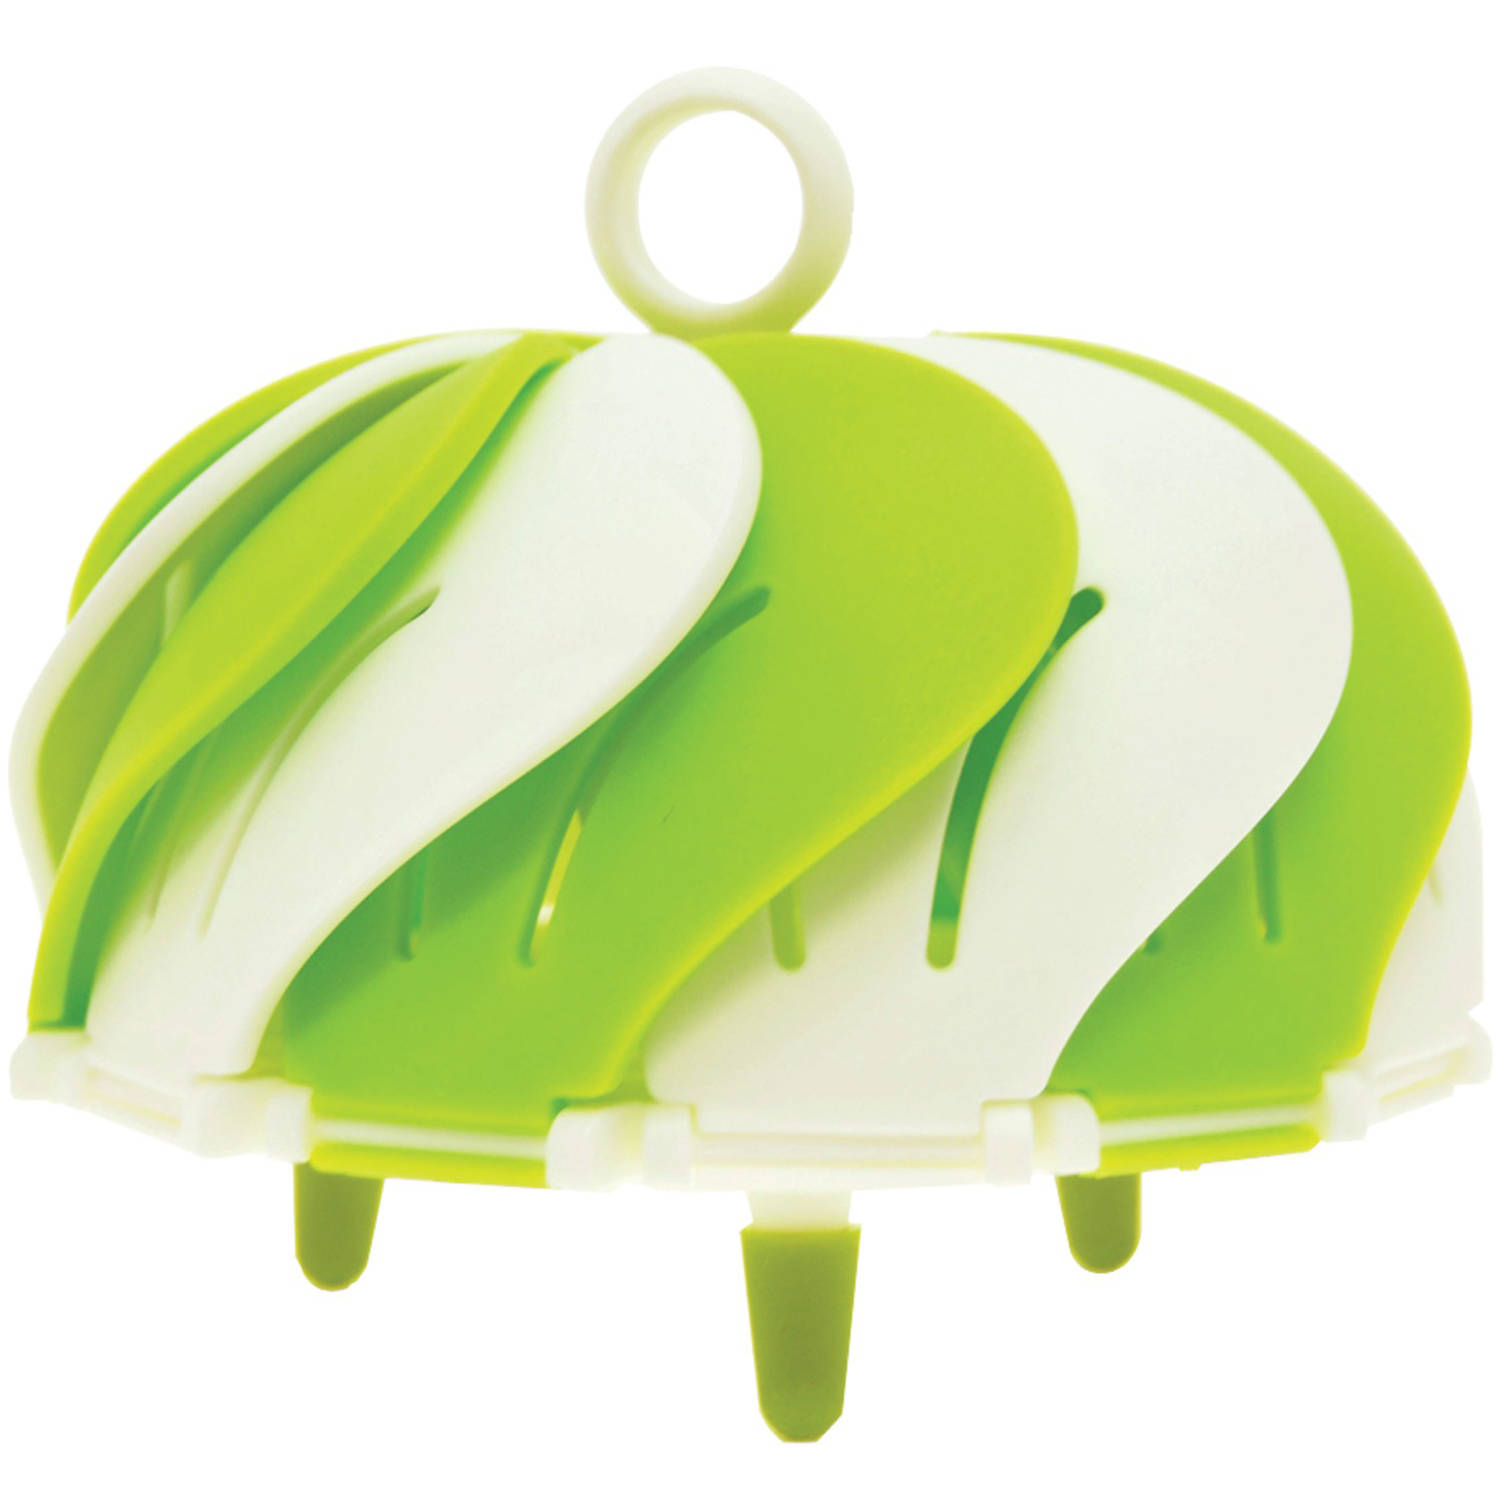 Starfrit 80484-006-0000 Vegetable Steamer